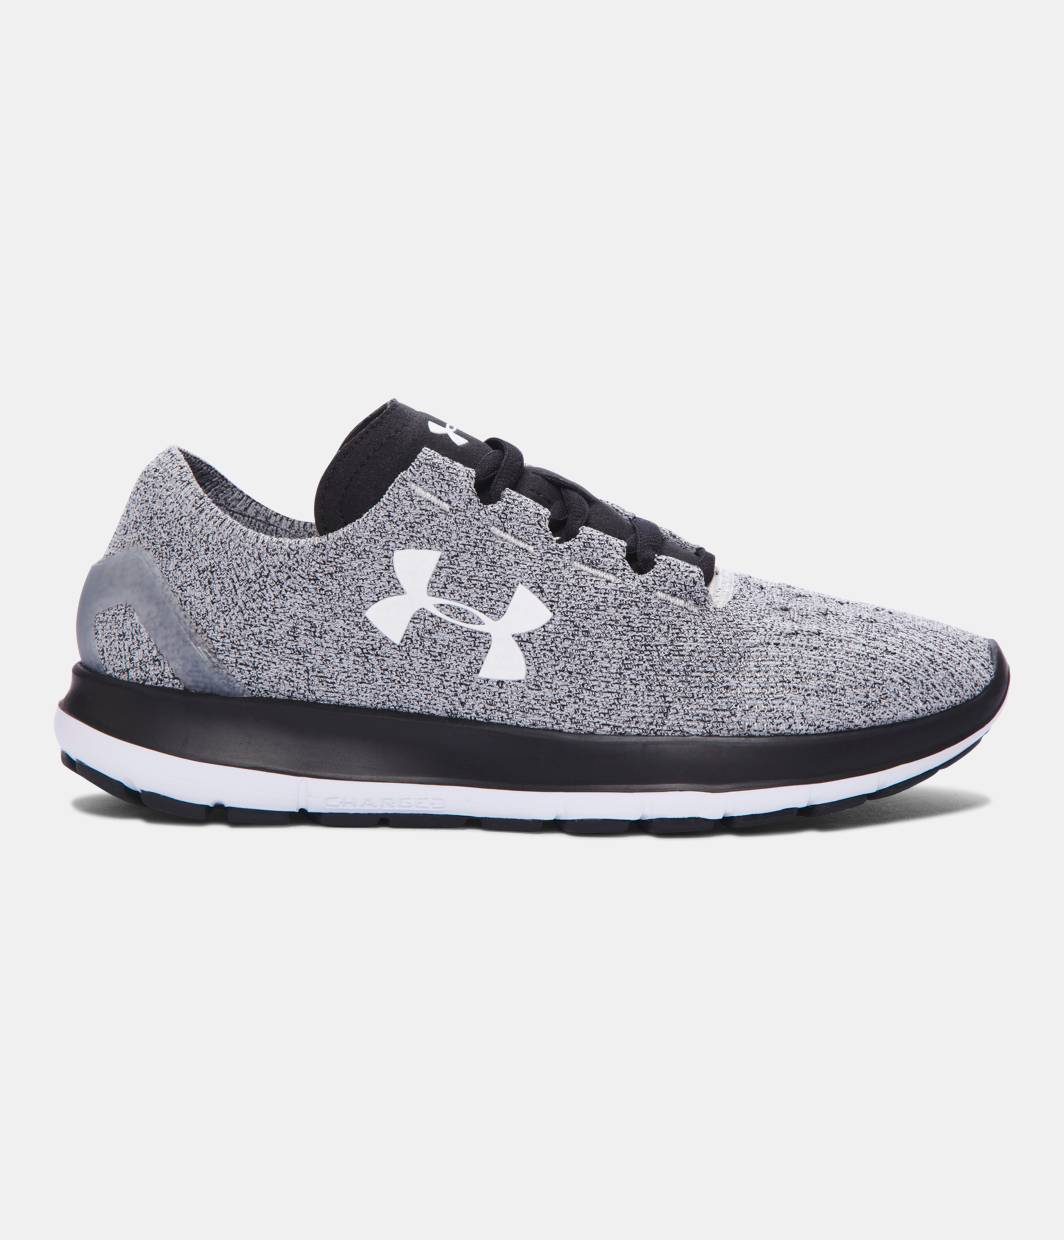 Under Armour Shorts Womens | Cheap Under Armour Shoes | Neon Under Armour Shoes